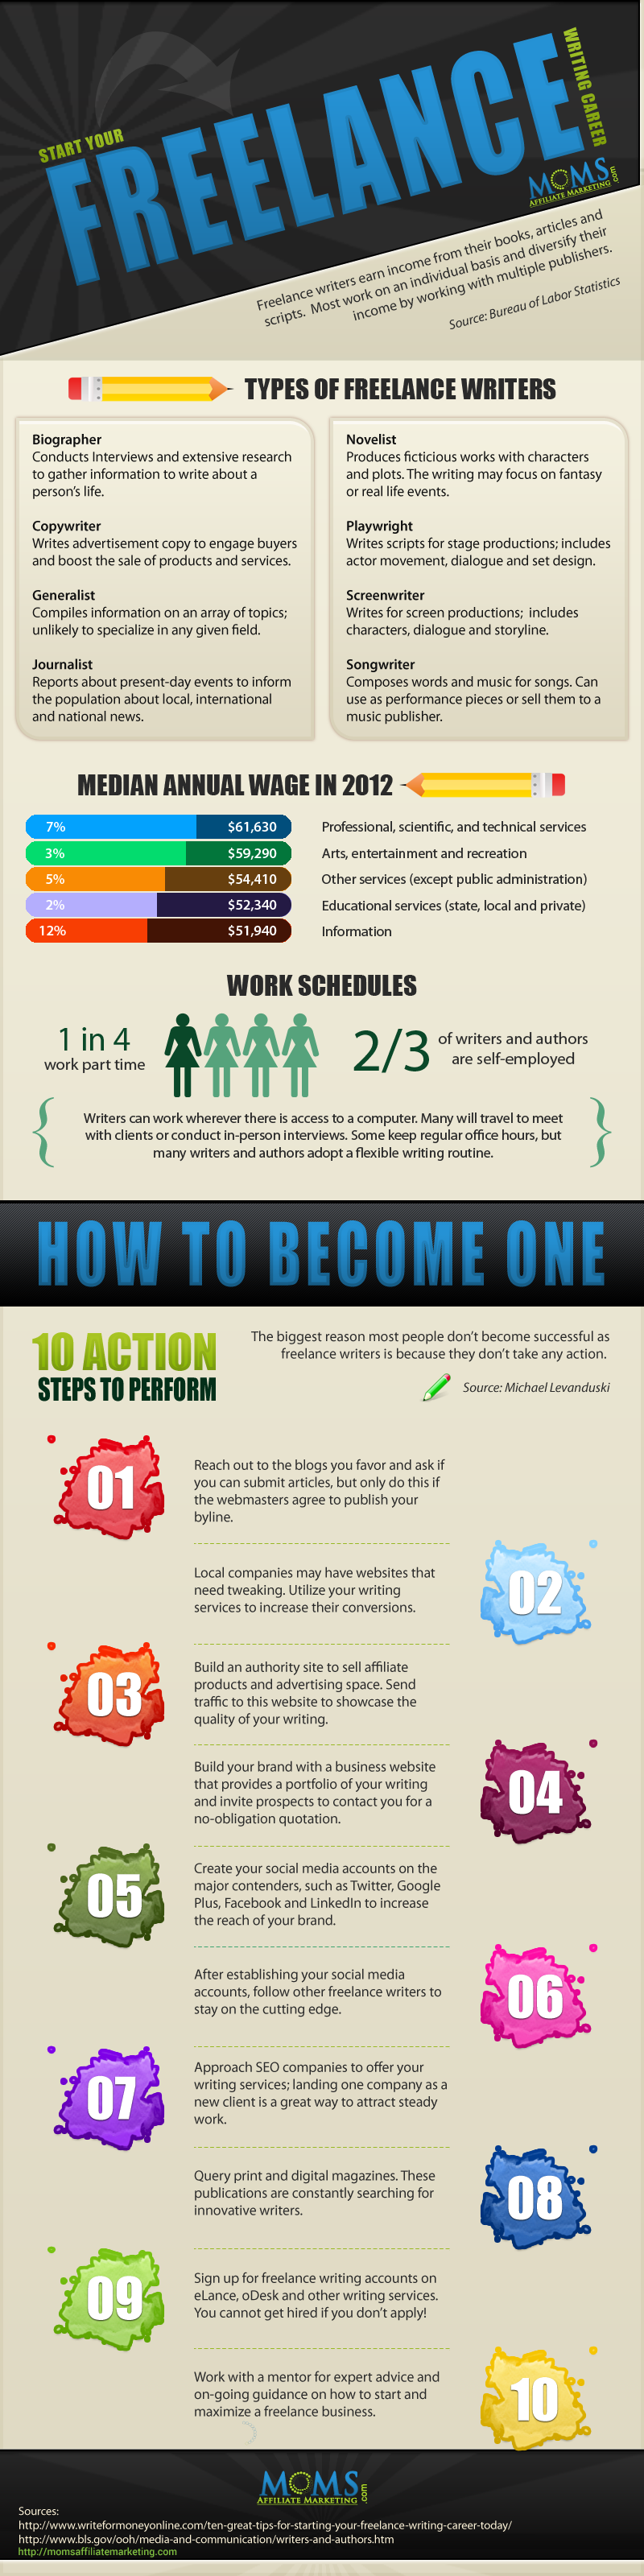 How To Be A Freelance Writer- infographic